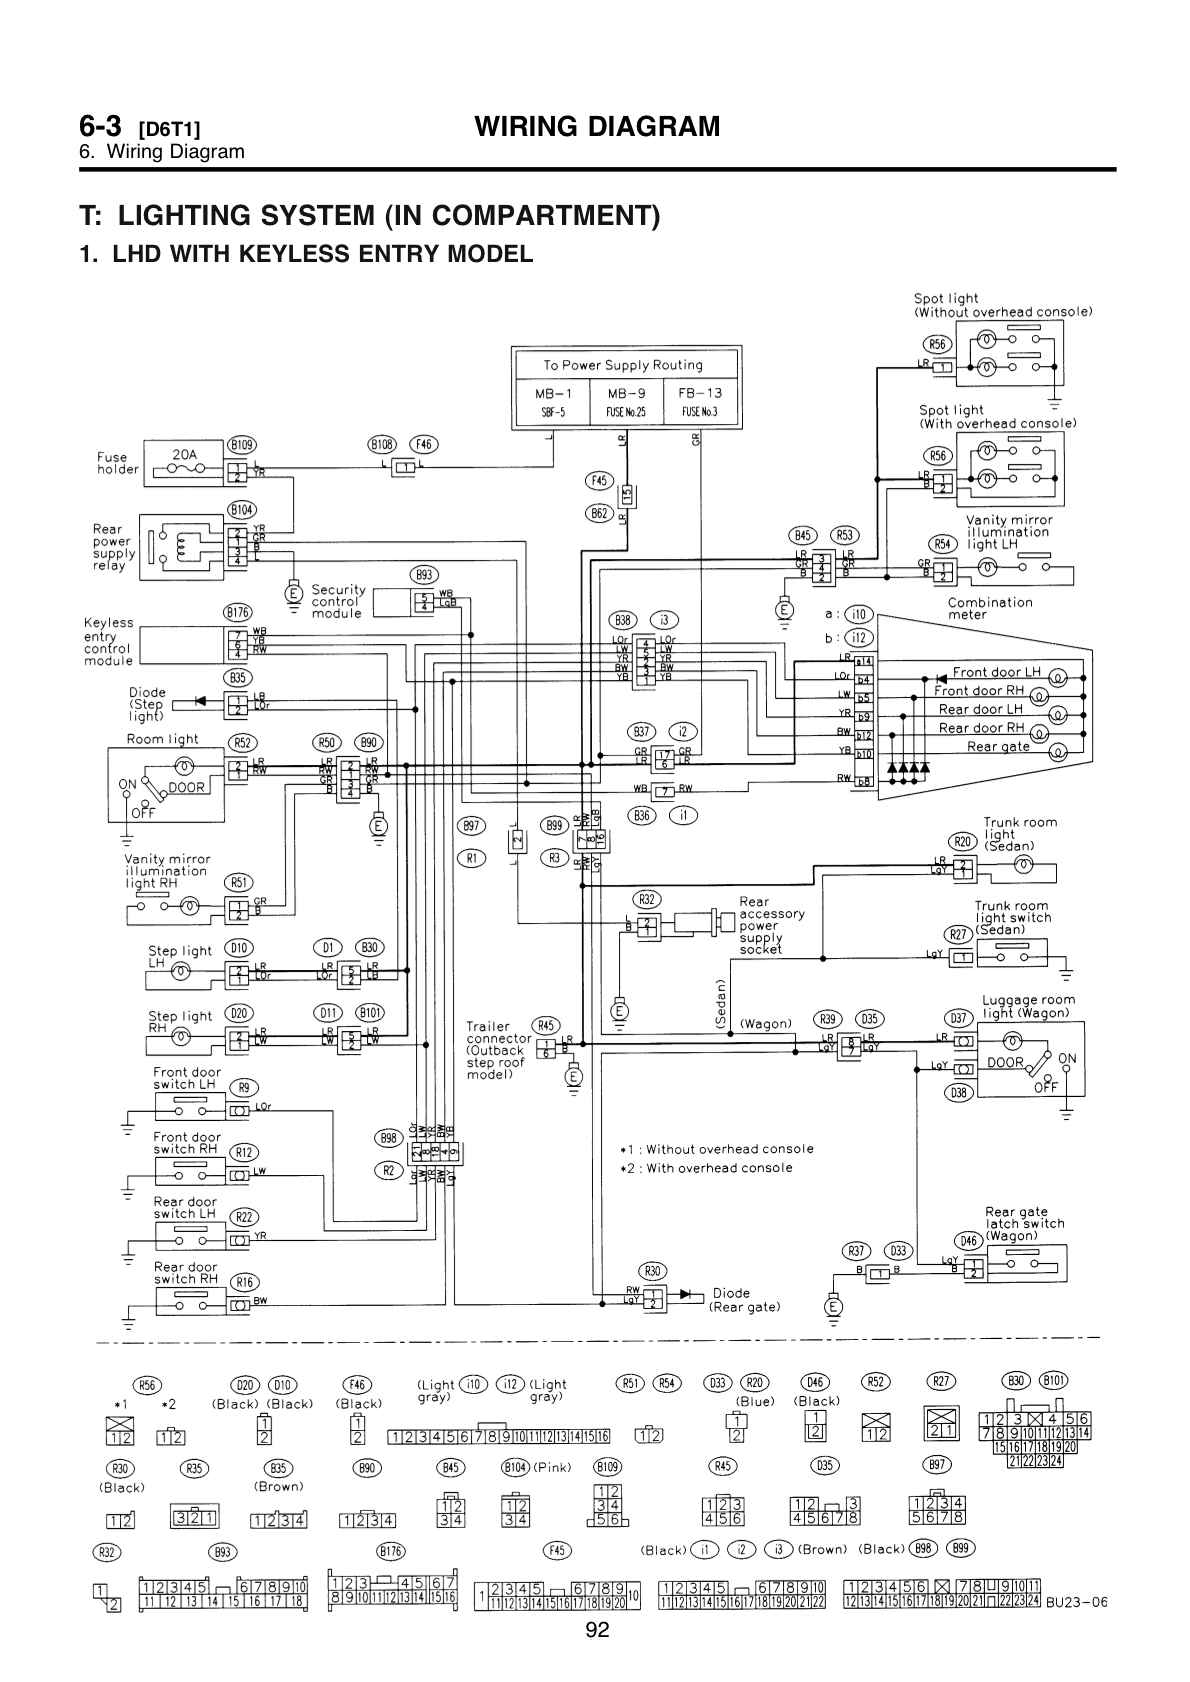 subaru wiring diagram subaru wiring diagram installing heated mirrors on a car that came without them?